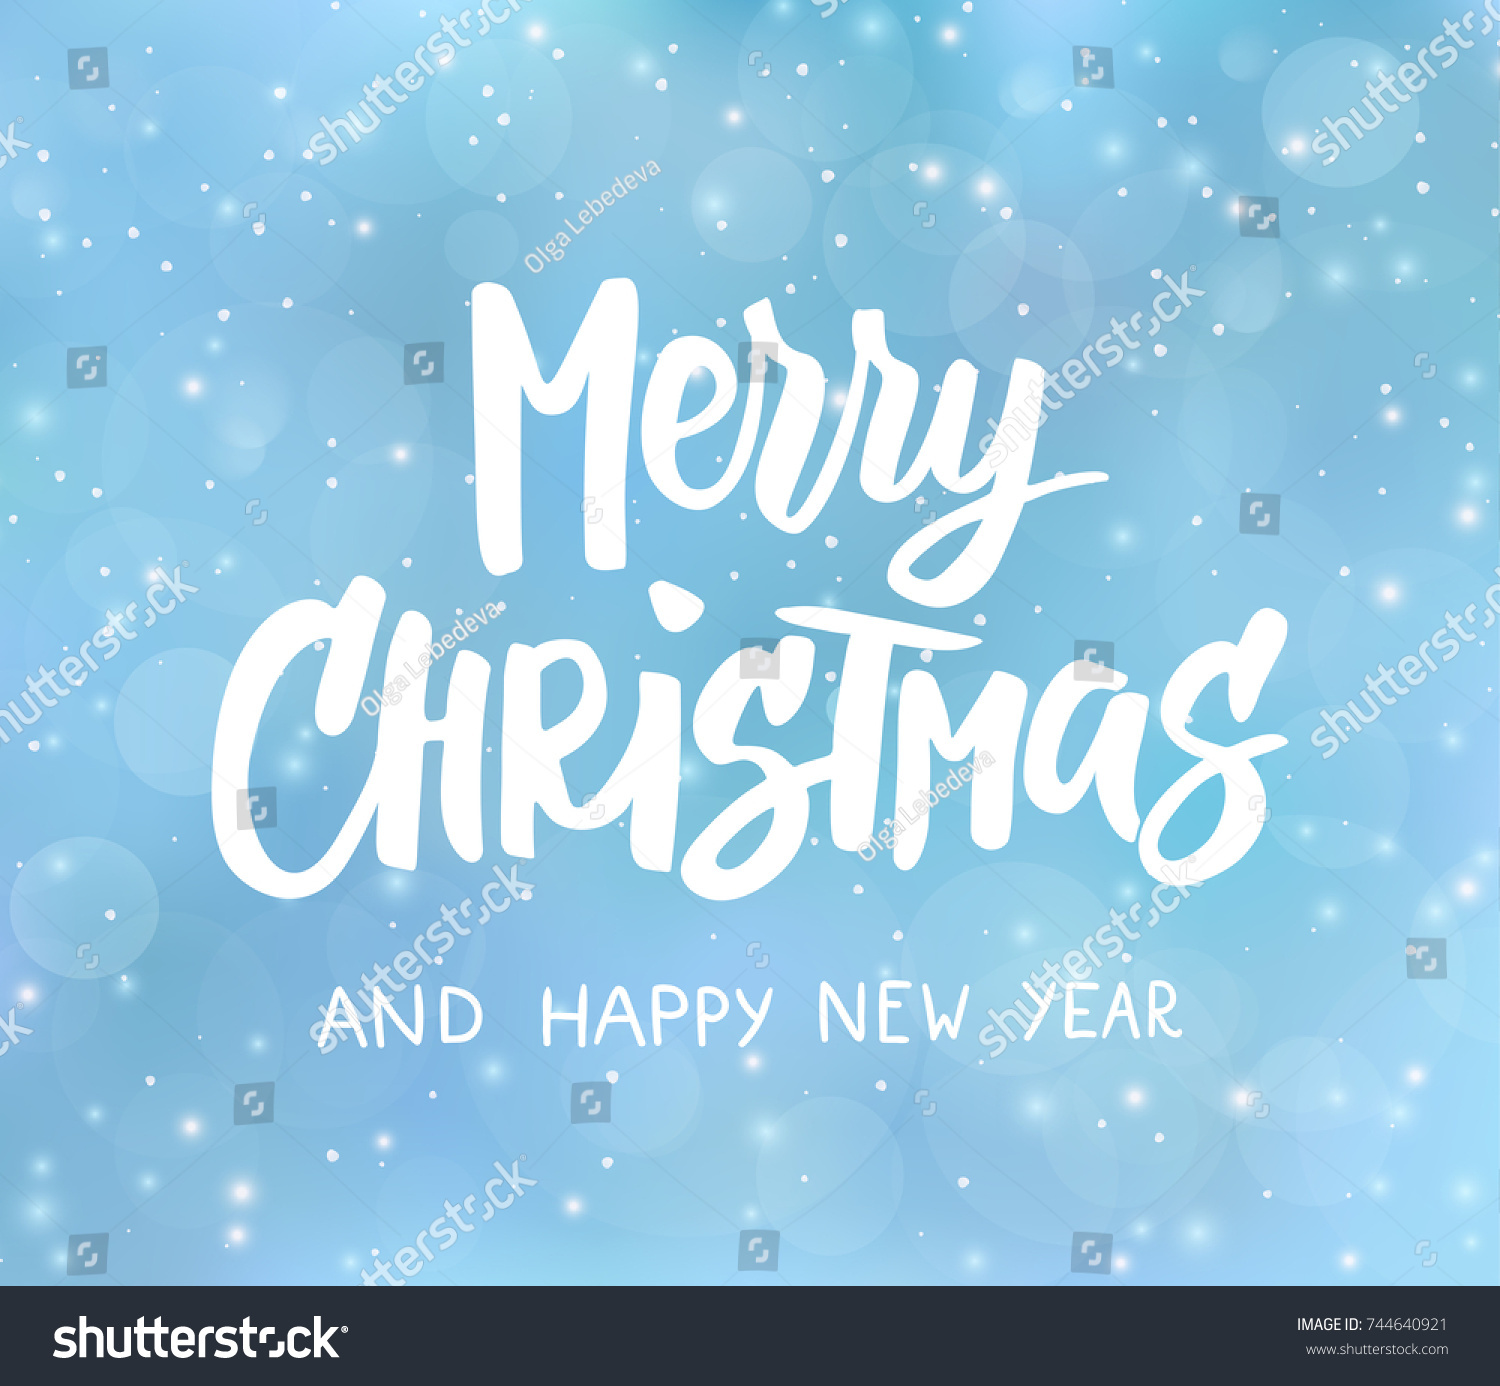 Merry christmas happy new year text stock vector 744640921 merry christmas and happy new year text hand drawn lettering holiday greetings quote kristyandbryce Images